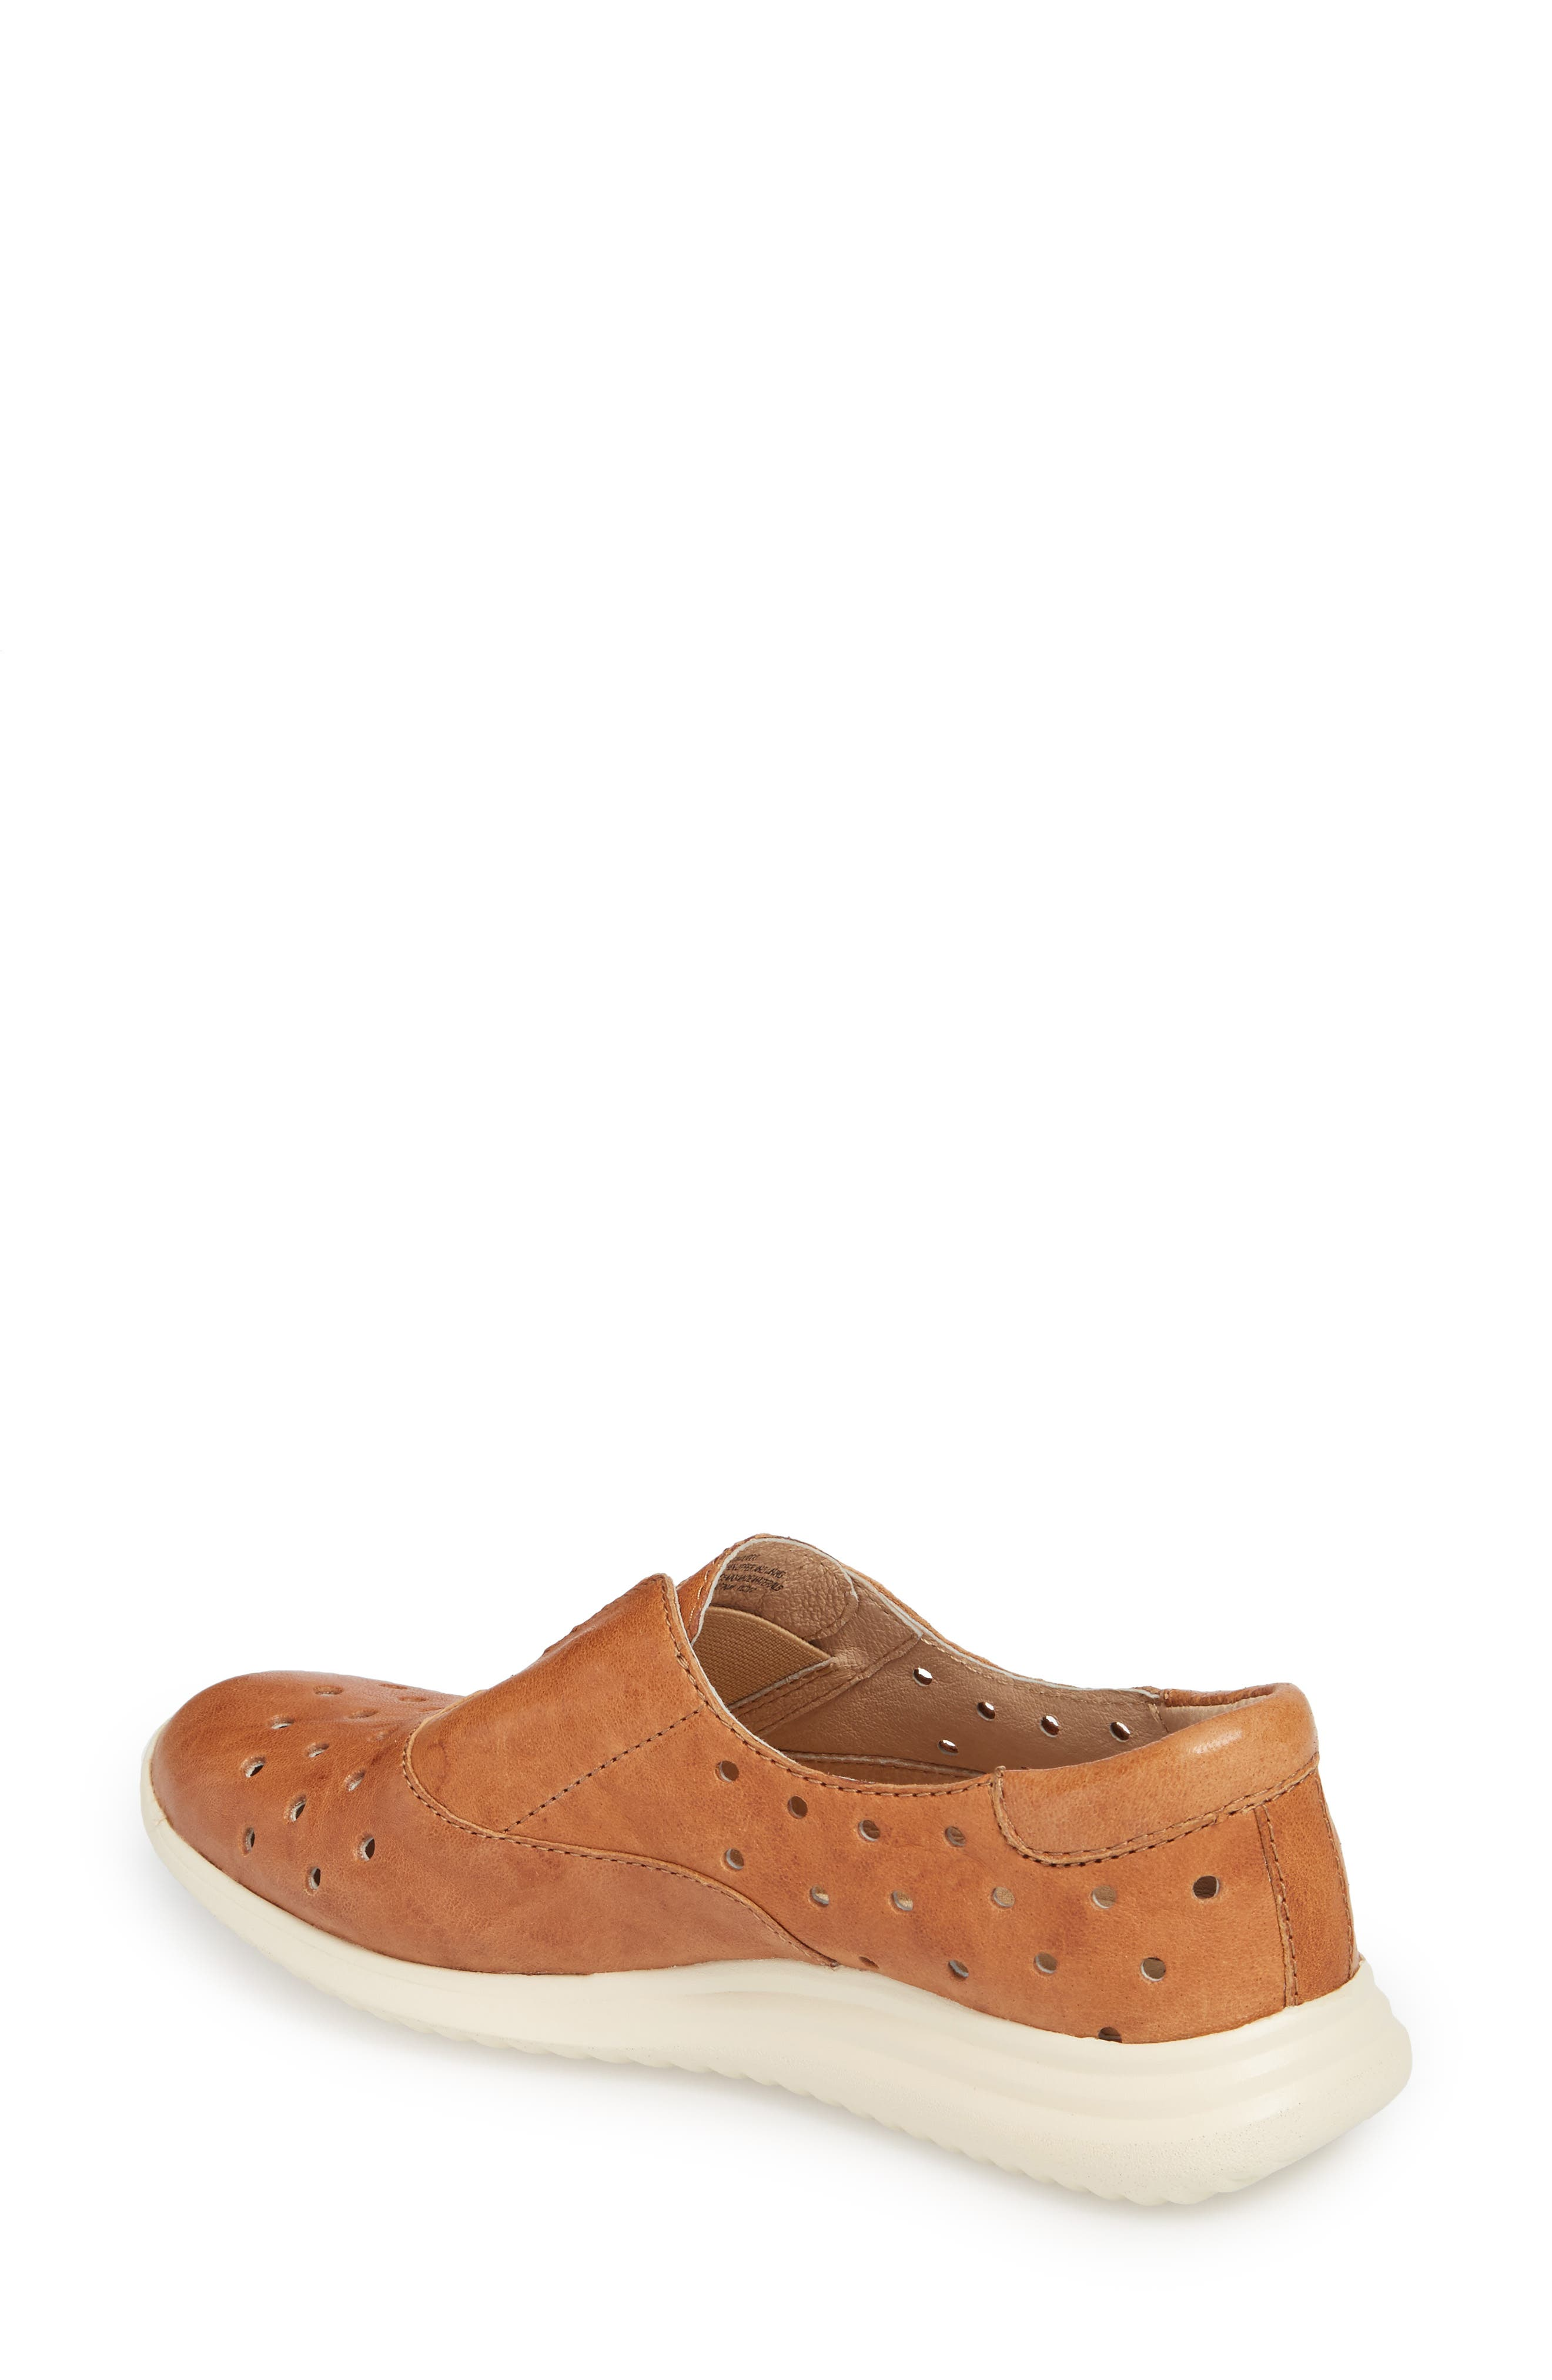 Noreen Slip-On Sneaker,                             Alternate thumbnail 2, color,                             Luggage Leather